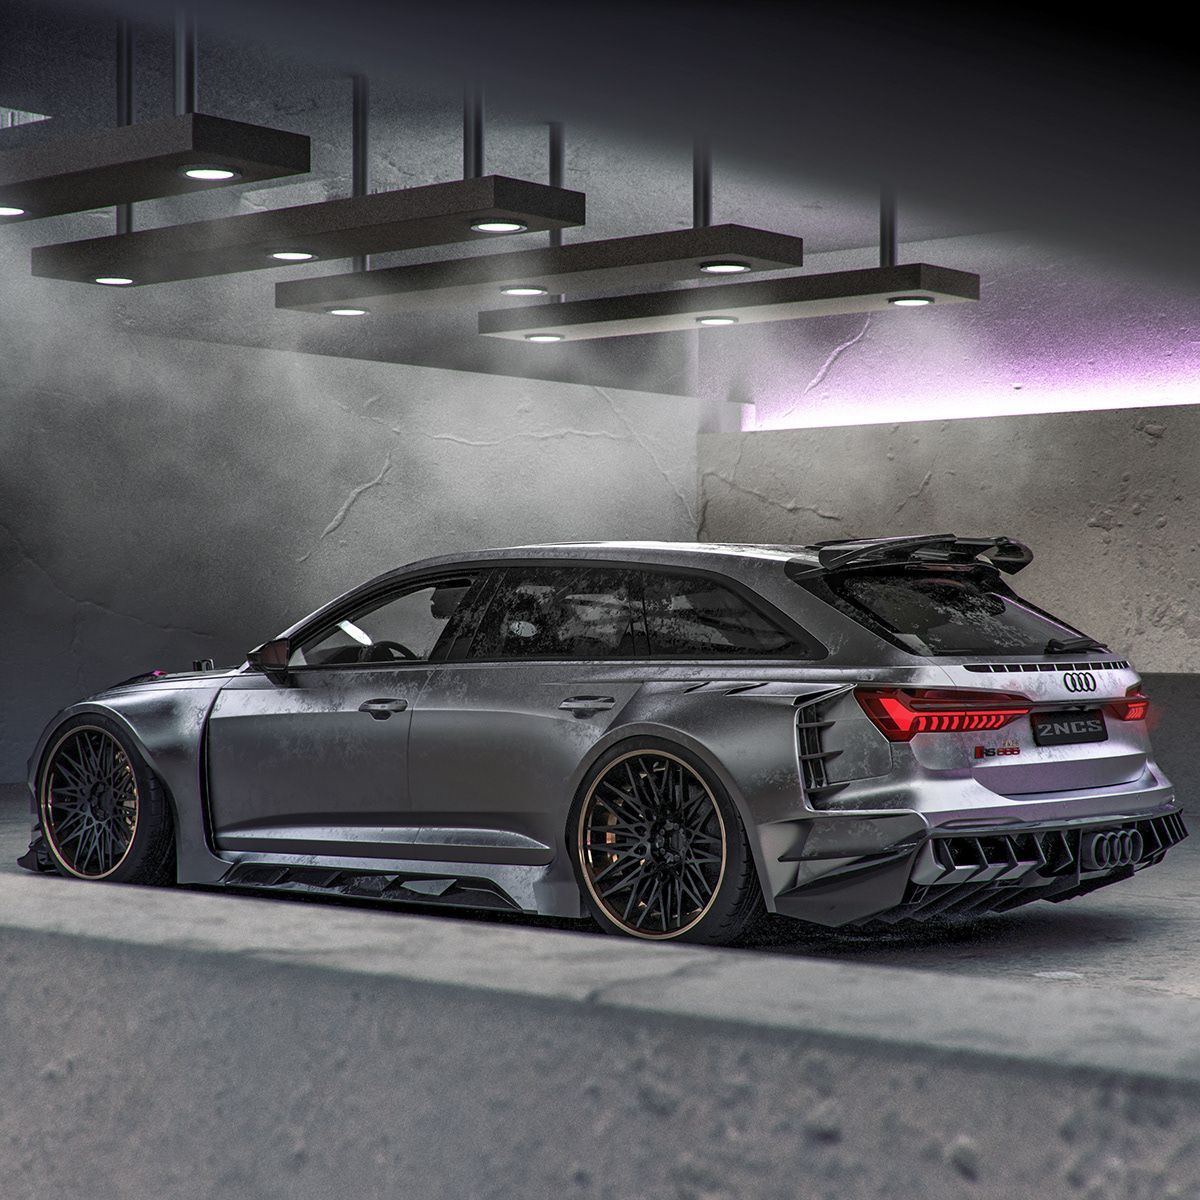 Audi Rs6 2020 Hybrids And Electric Cars In 2020 Audi Rs6 Audi Rs Audi Cars